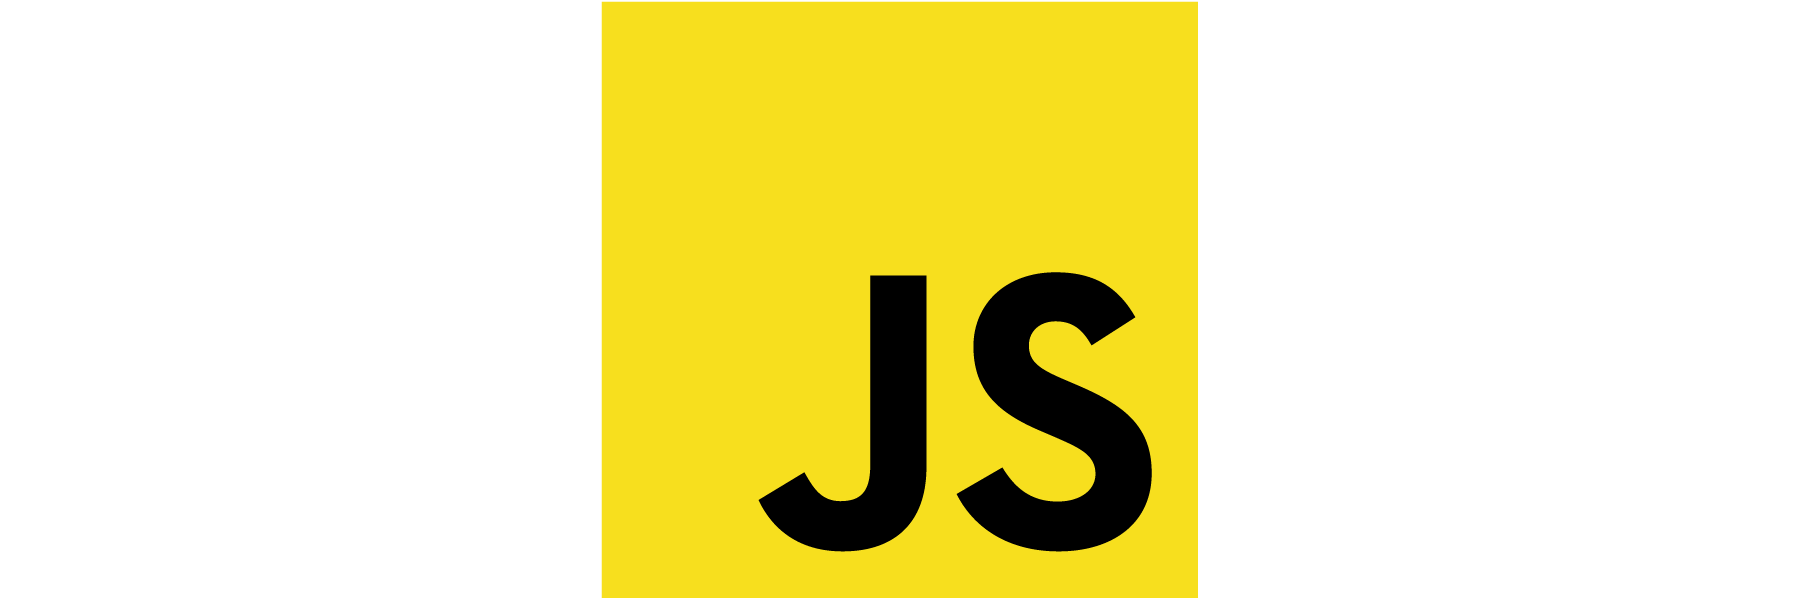 Technology-Logos-JavaScript@2x